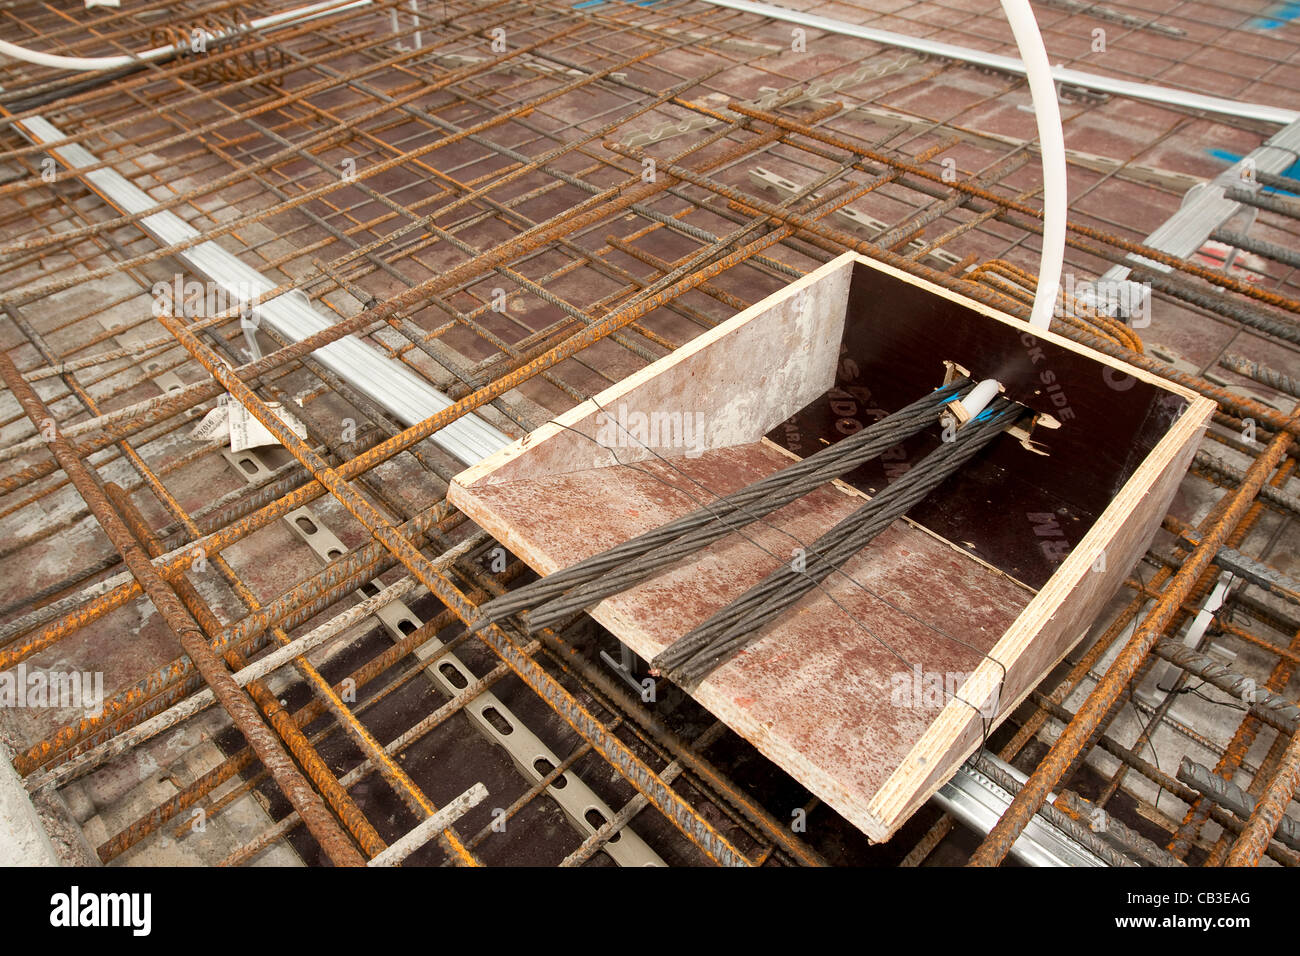 Post-tensioning steel cables in concrete floor formwork Stock Photo